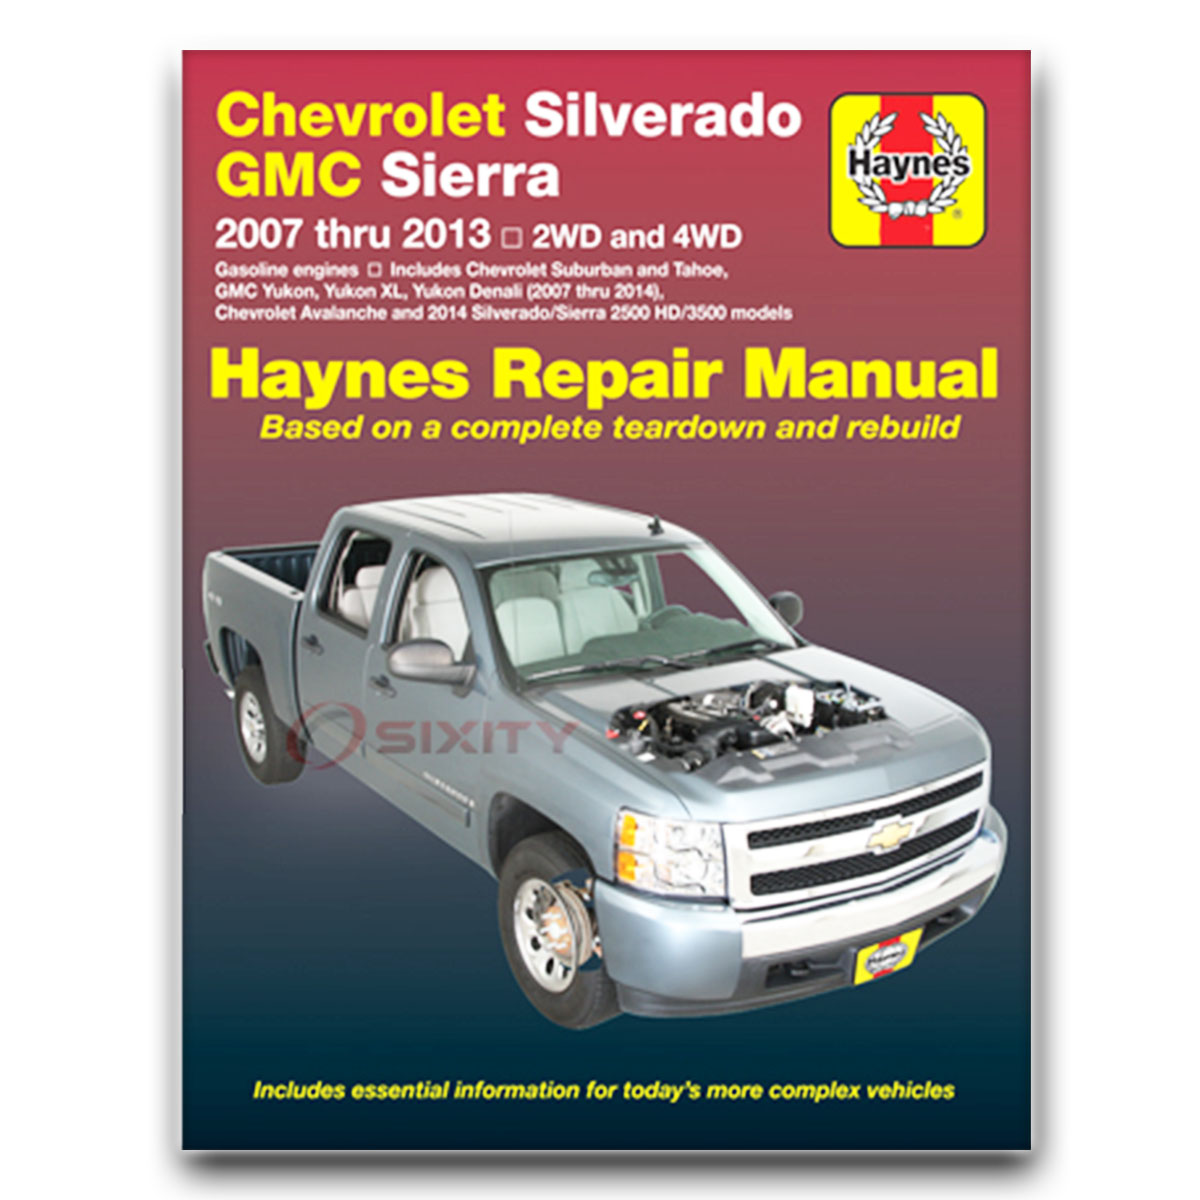 Haynes Repair Manual for Chevy Silverado 2500 HD LTZ Classic WT LS Shop ph